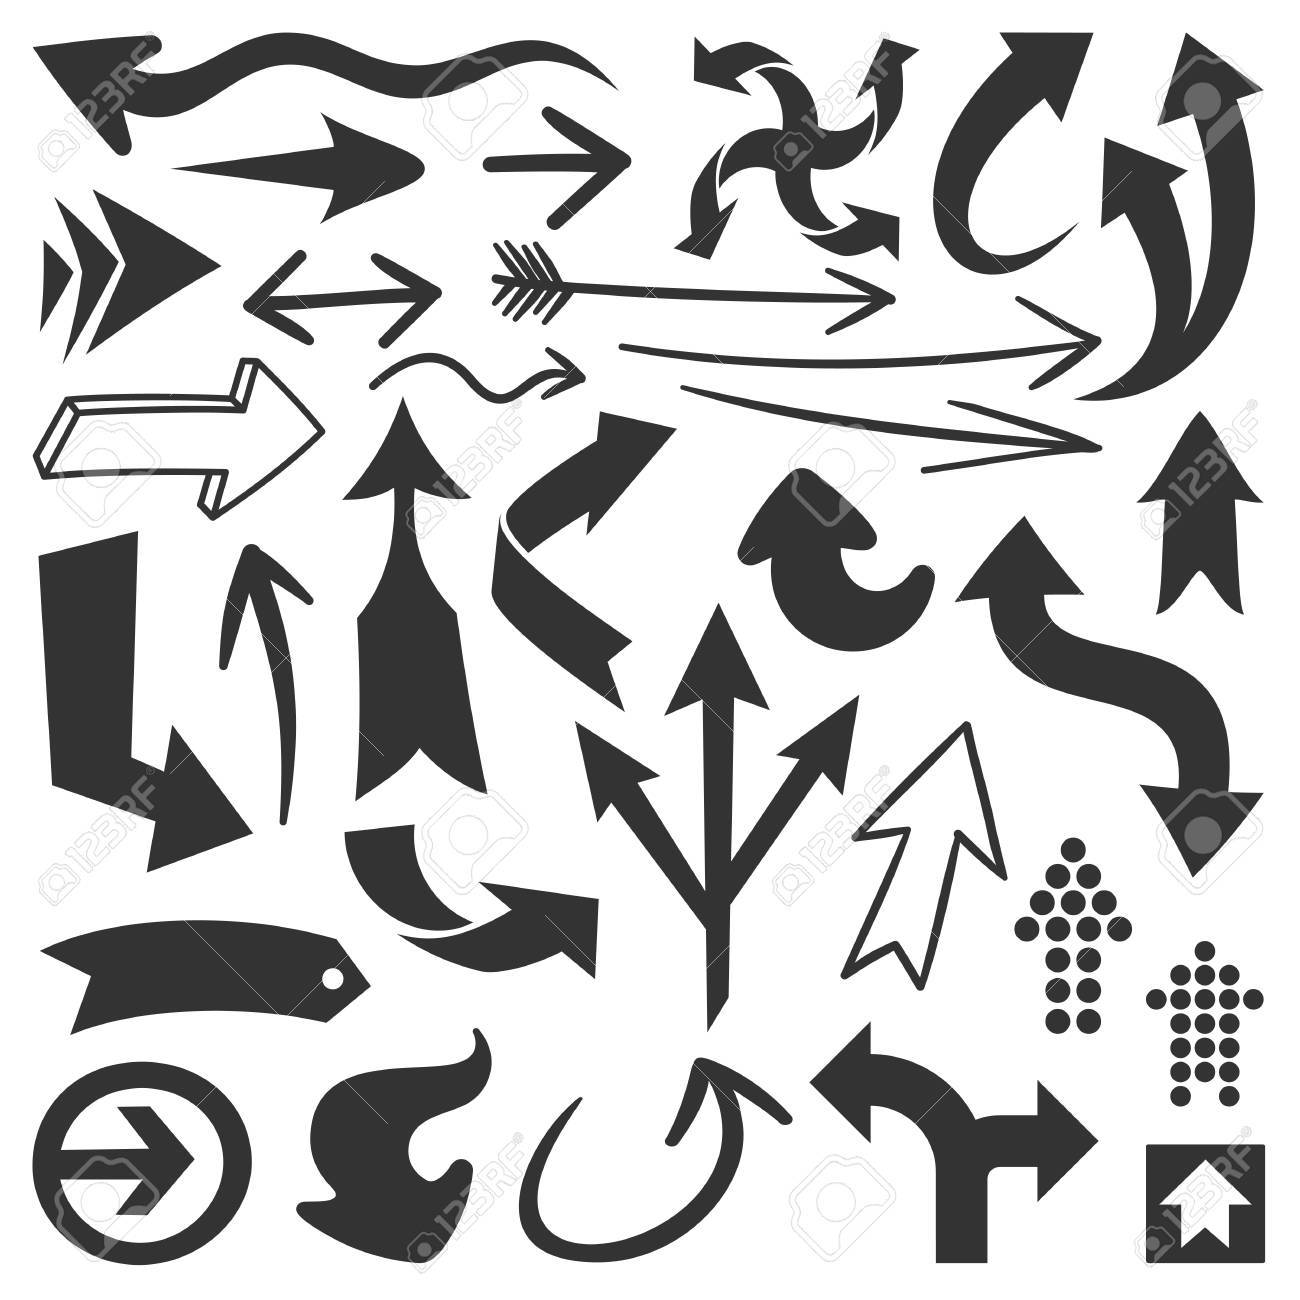 Set of black arrows great for any design projects Stock Vector - 14221564